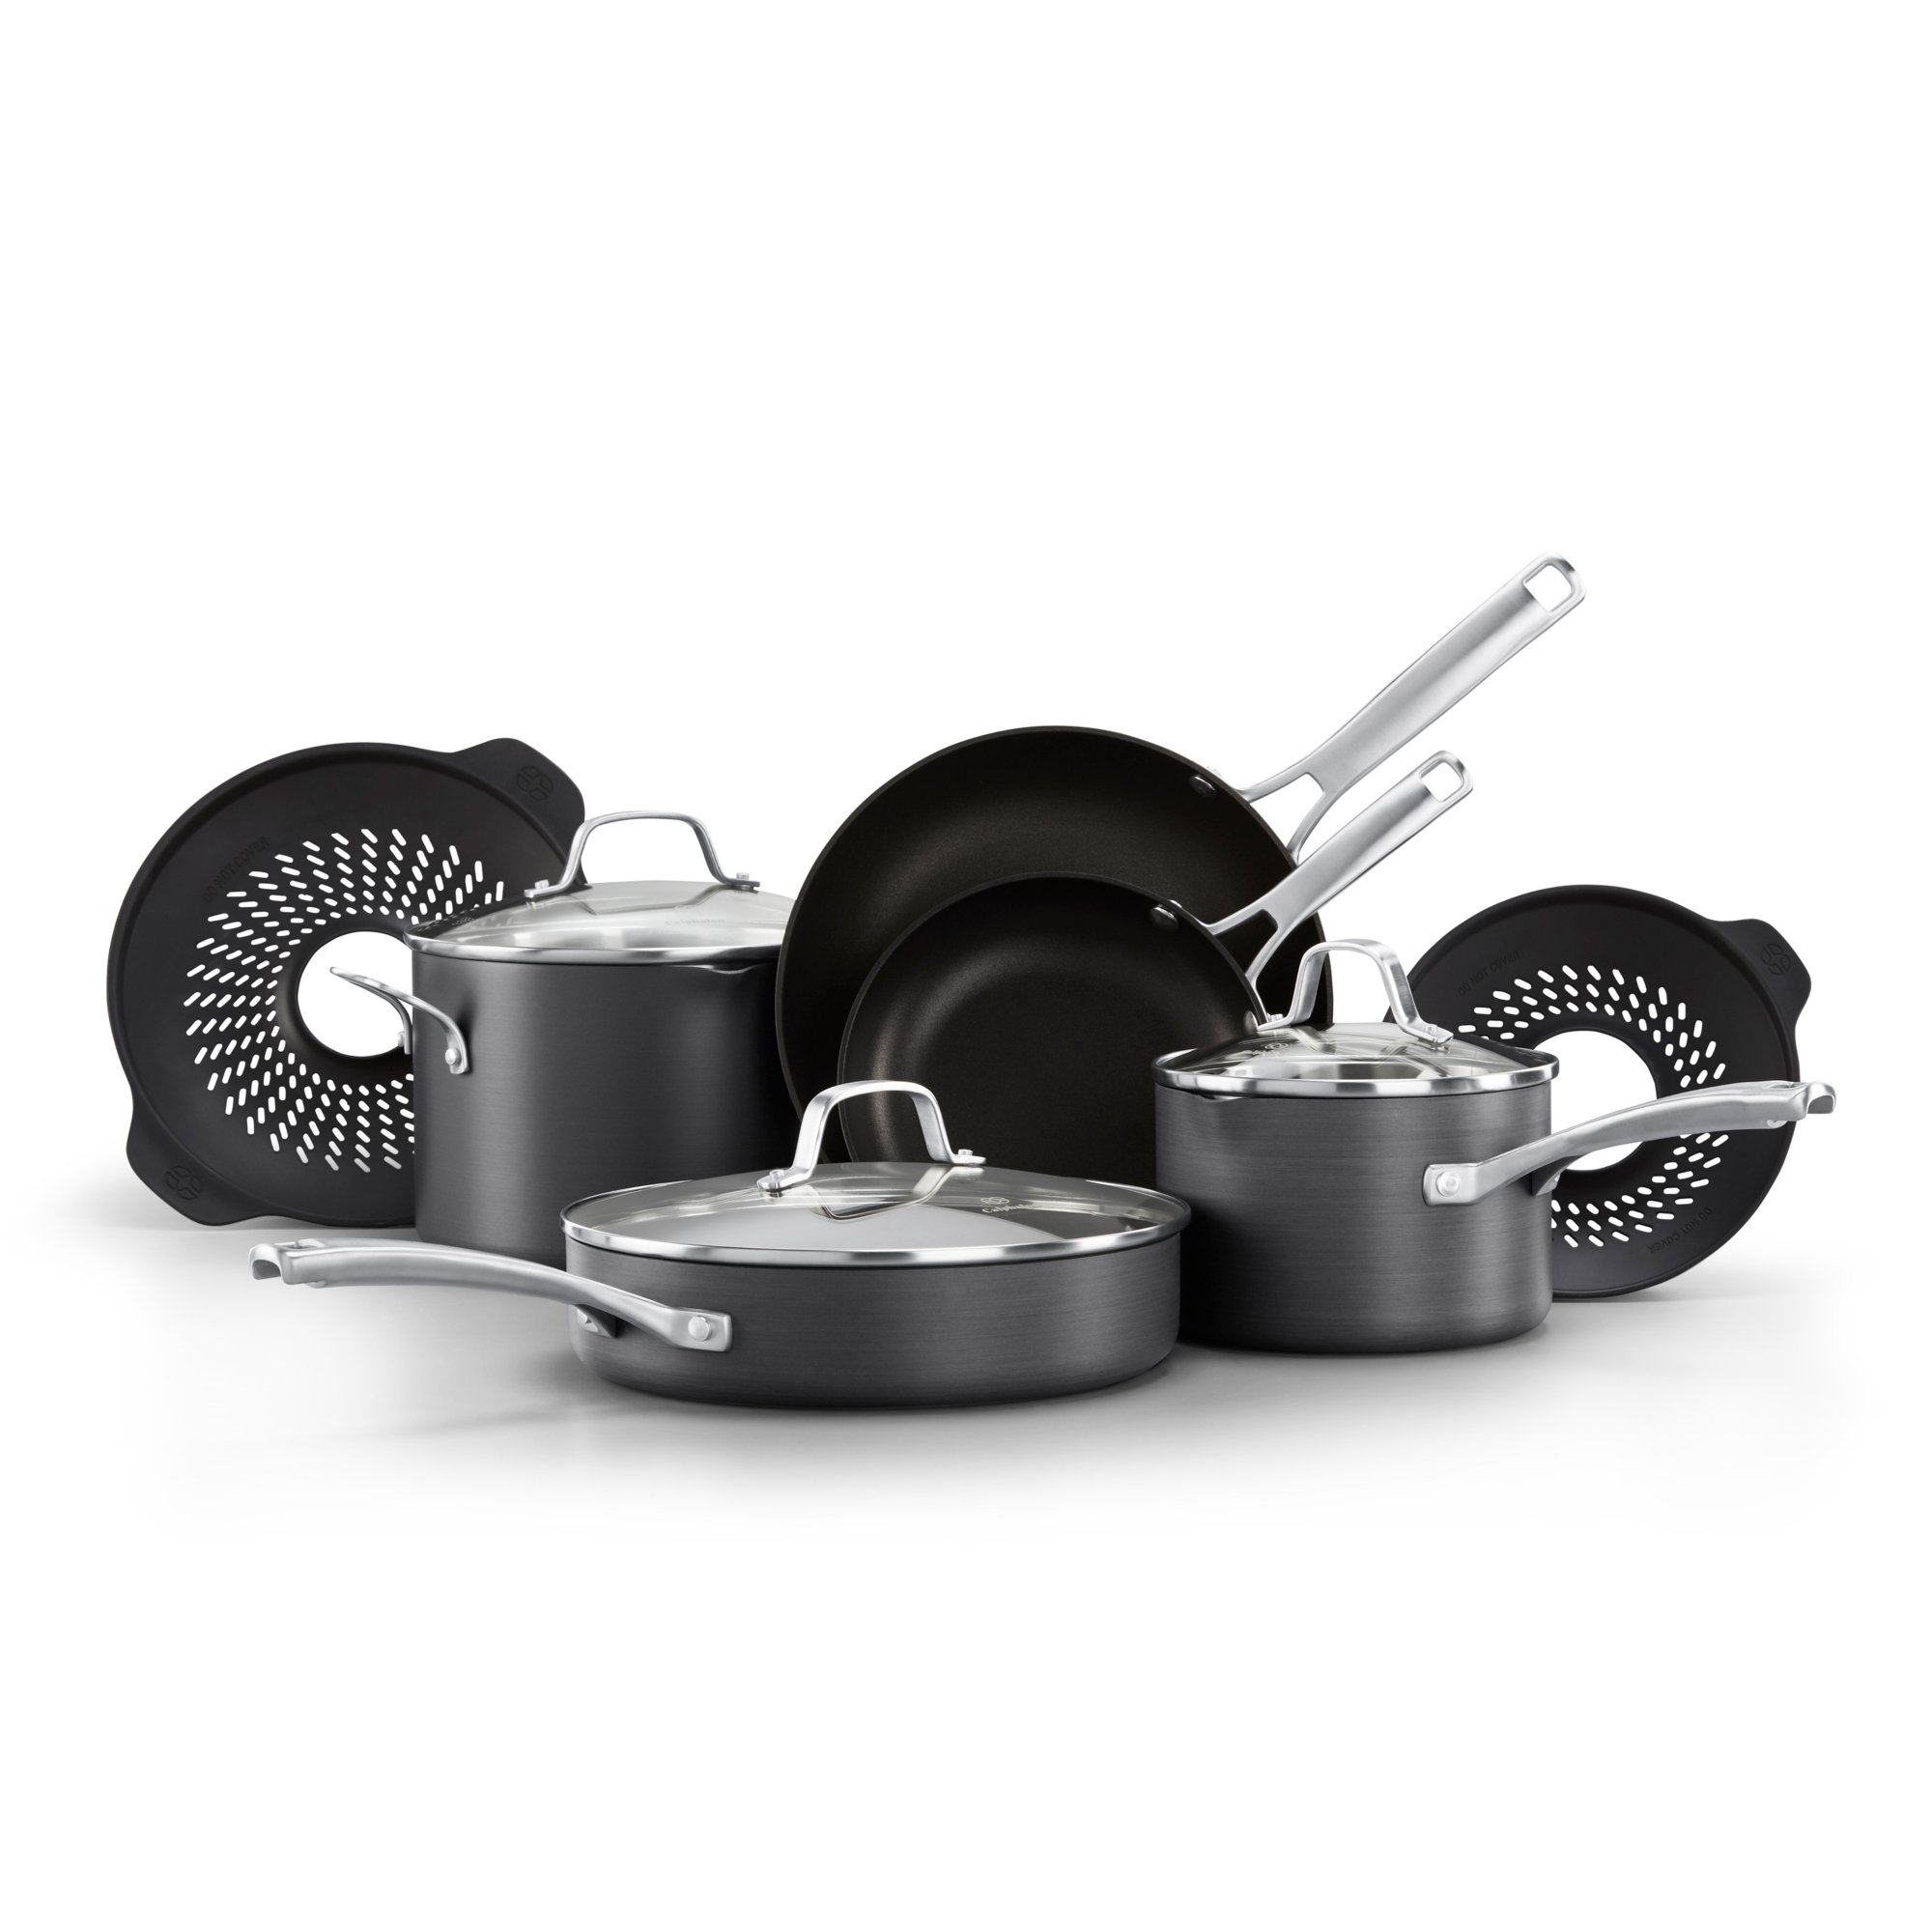 Calphalon Classic? Nonstick 10-Piece Cookware Set with No-Boil-Over Inserts